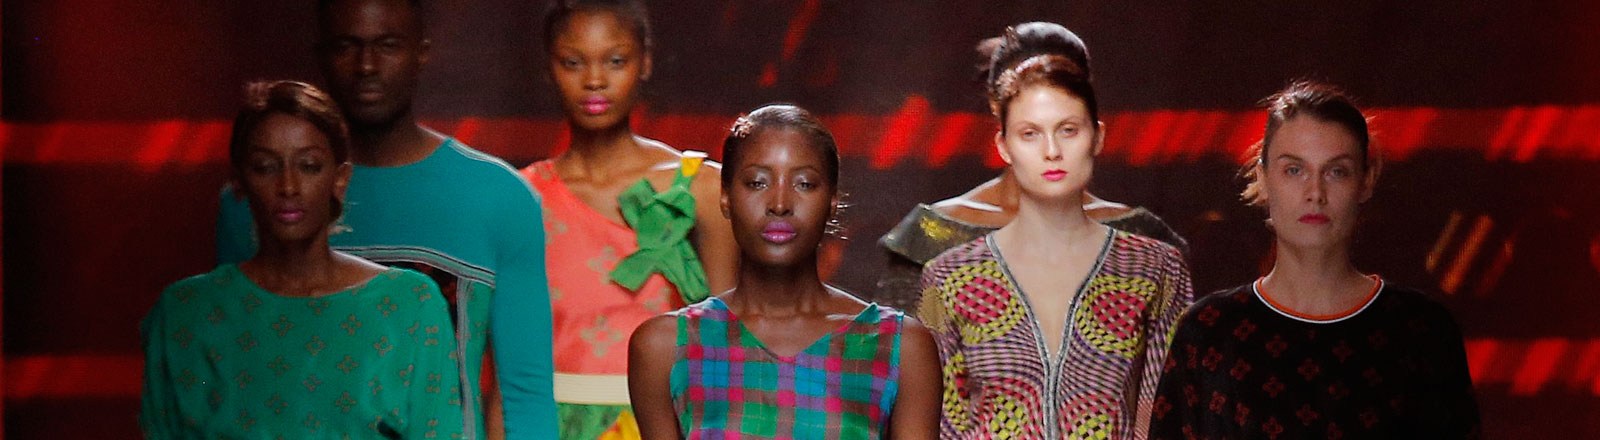 Mode von der Designerin Kibonen auf der Mercedes Benz Fashion Week South Africa in Johannesburg im Oktober 2014.